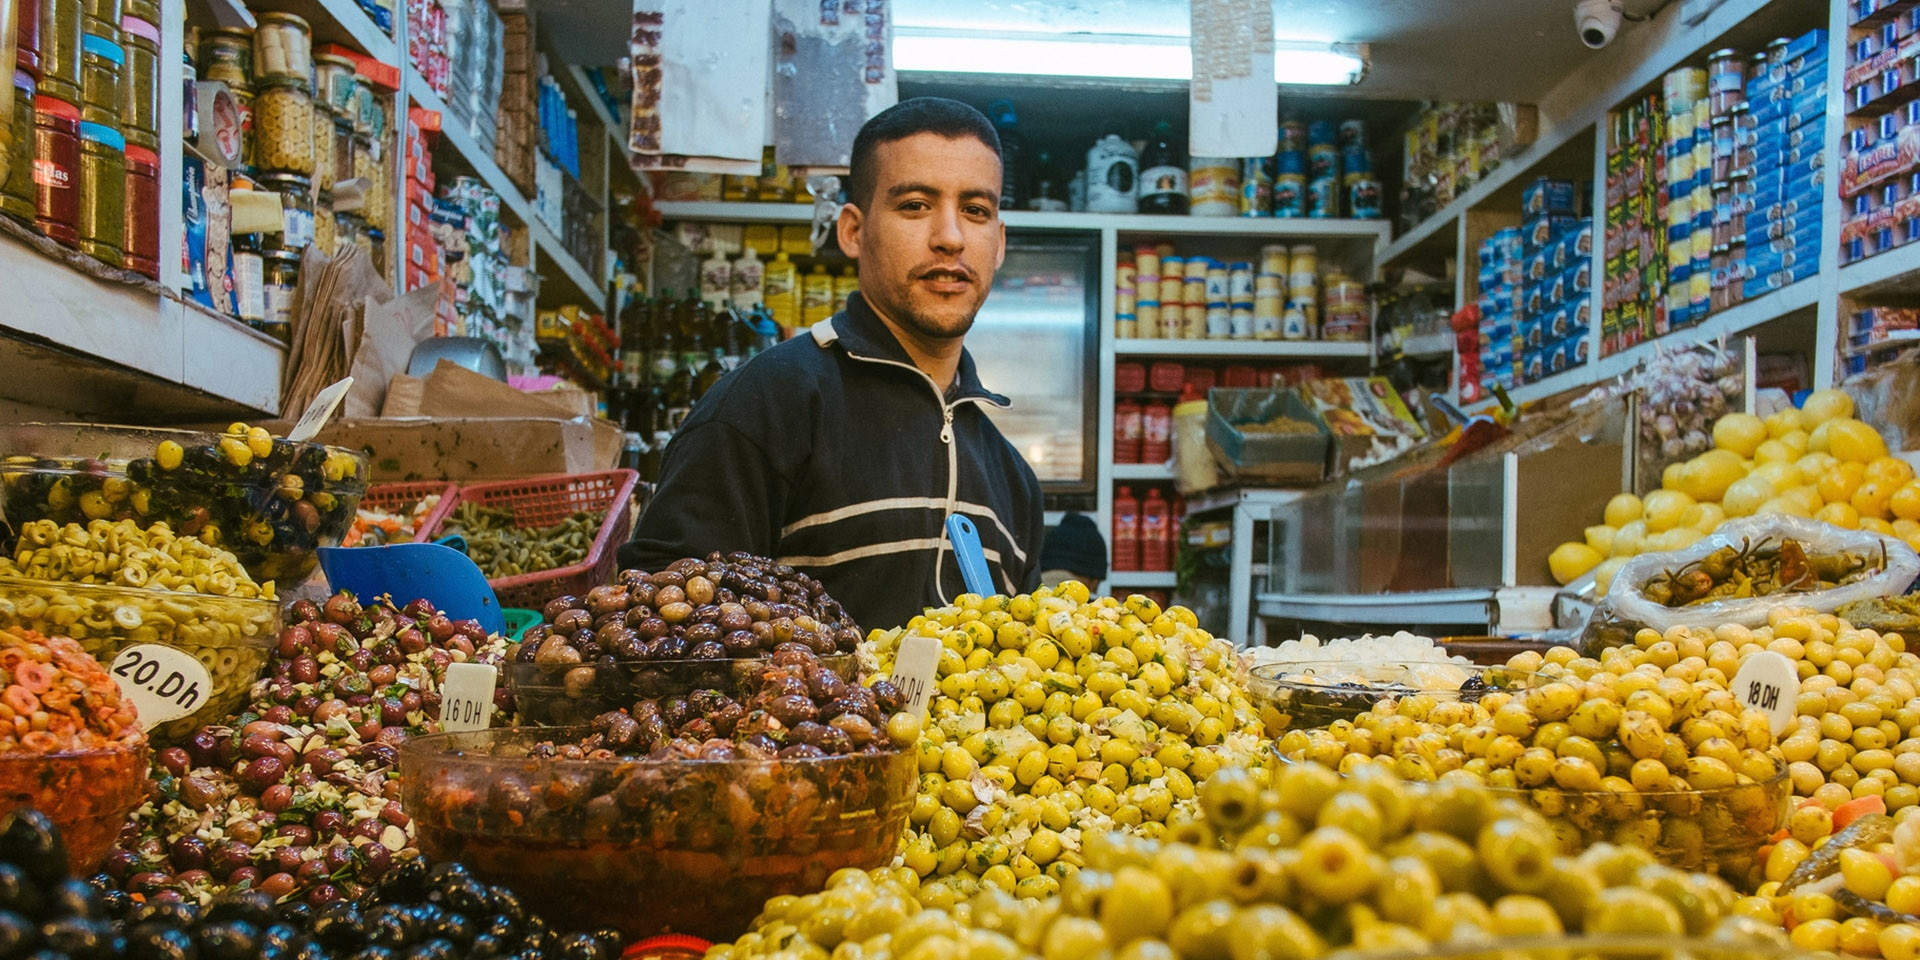 An olive seller stands in a small shop in front of a large display of olives of all kinds.